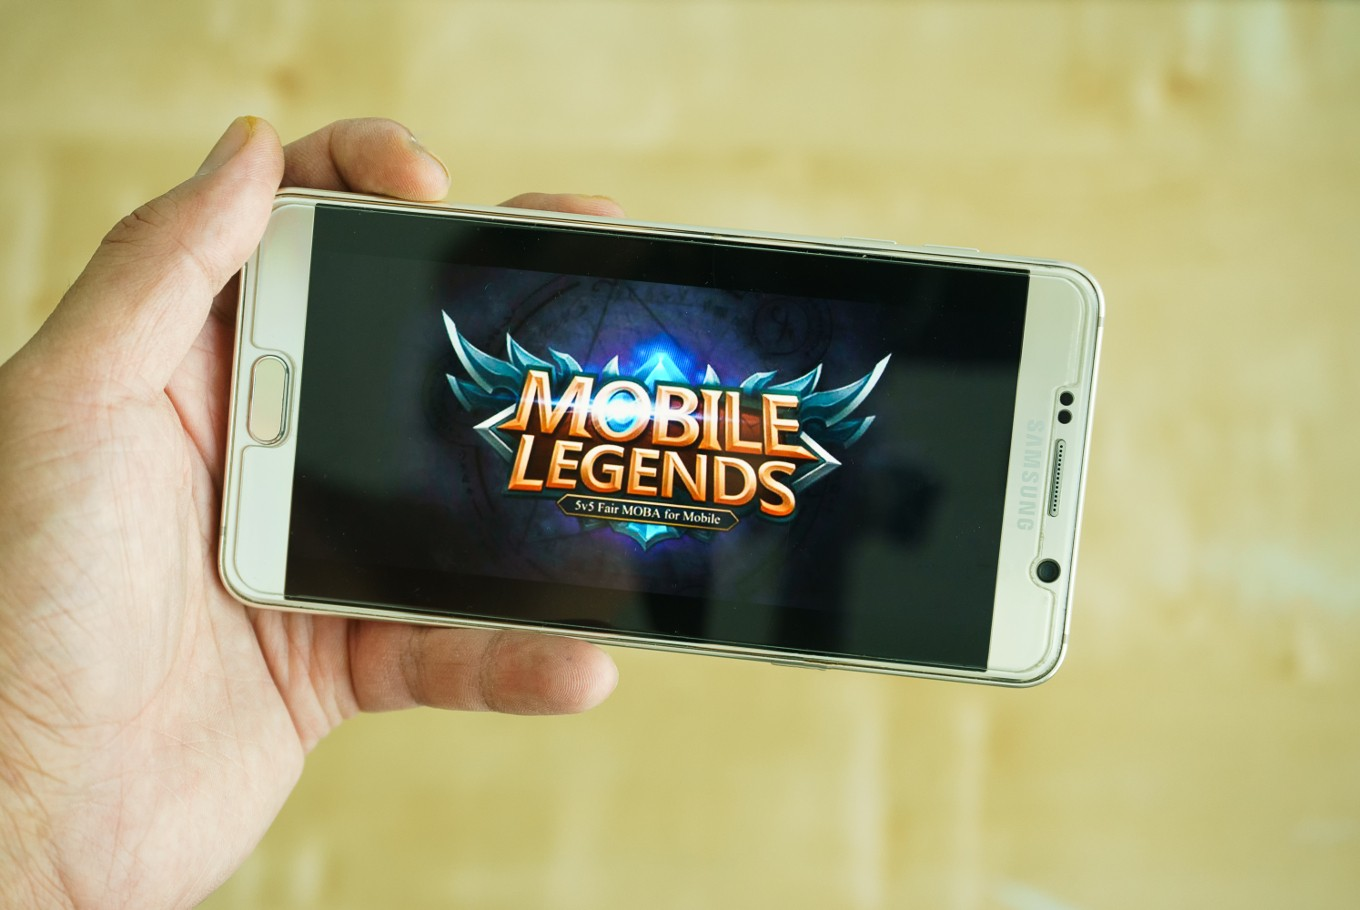 Southeast Asian legends highlighted in App Store's 'Mobile Legends' spotlight